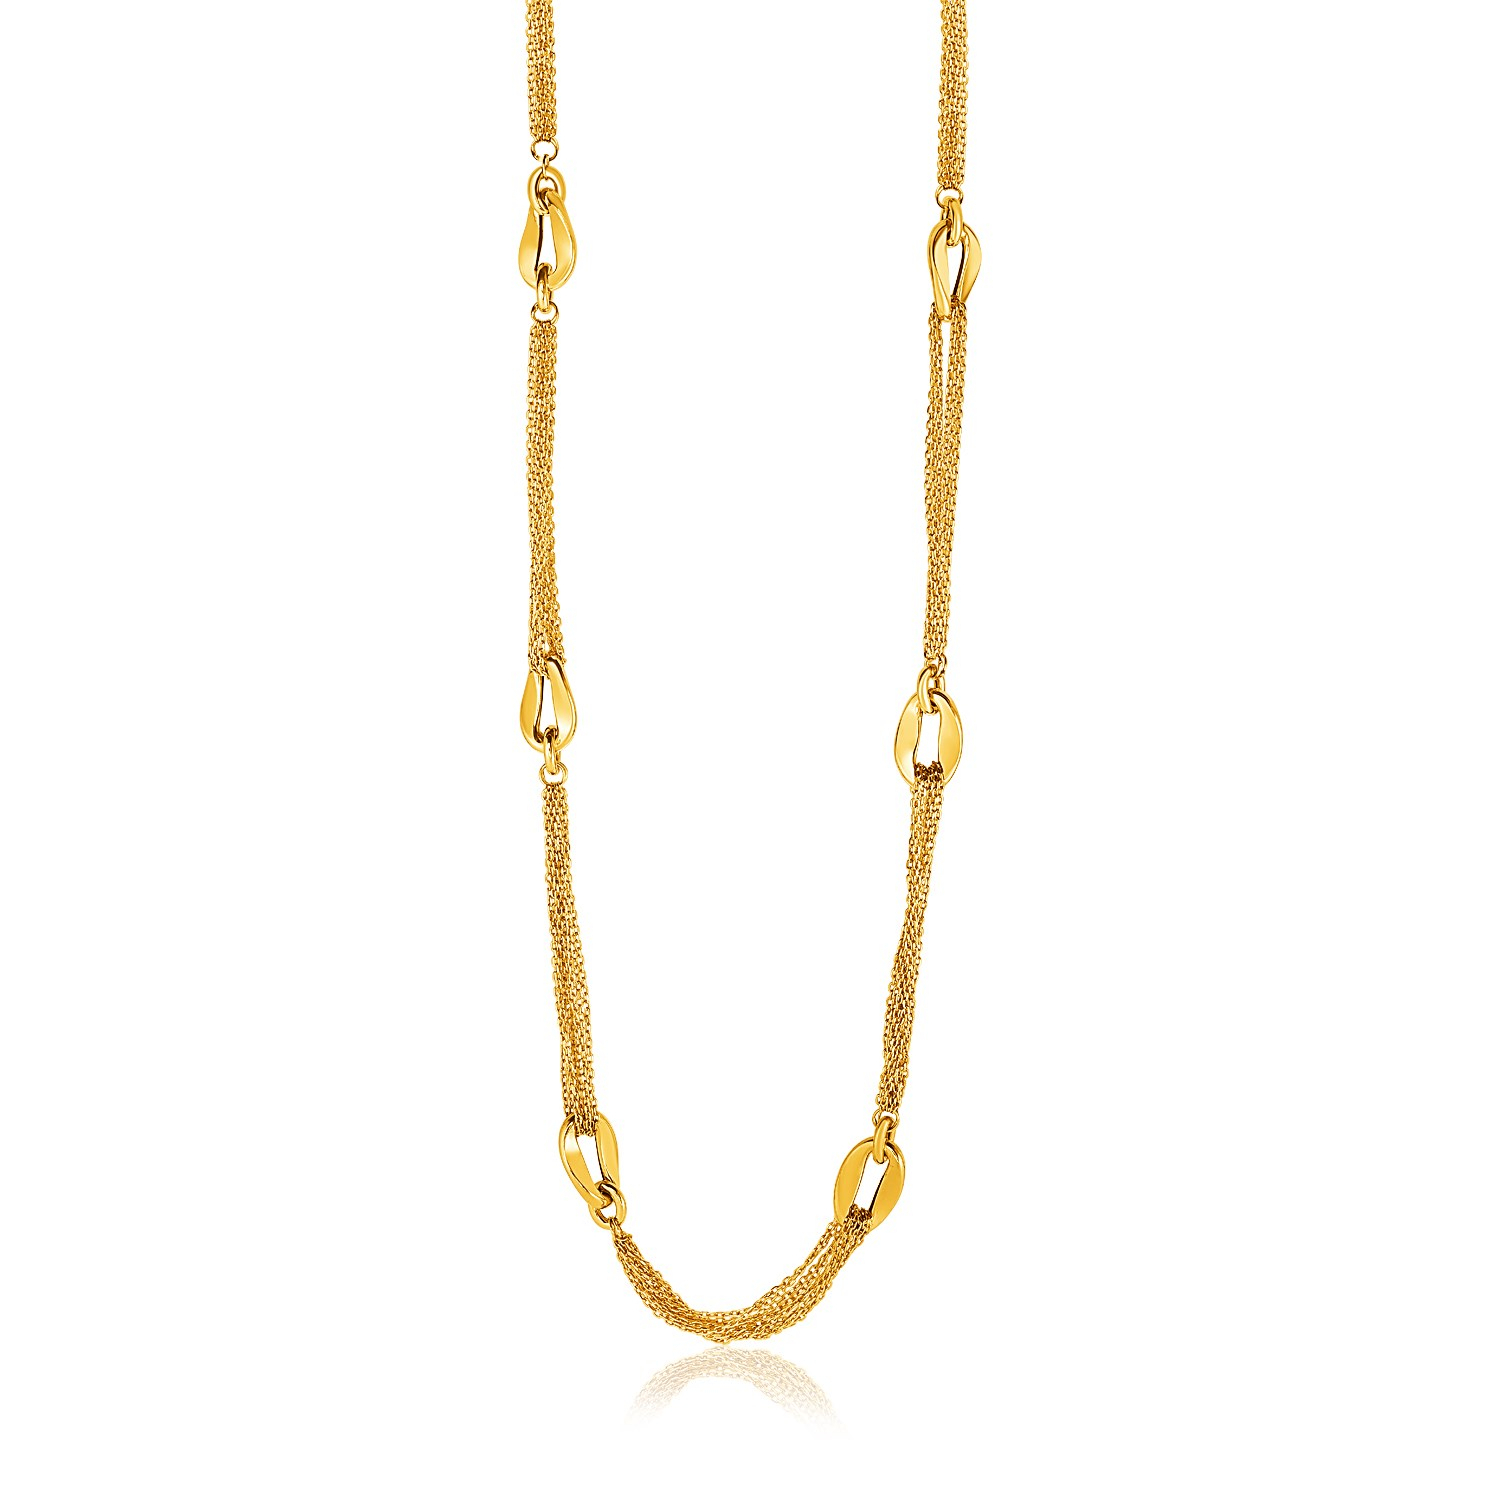 14K Yellow Gold Curved Oval Link And Multi Strand Cable Chain Within Most Popular Long Link Cable Chain Necklaces (View 4 of 25)